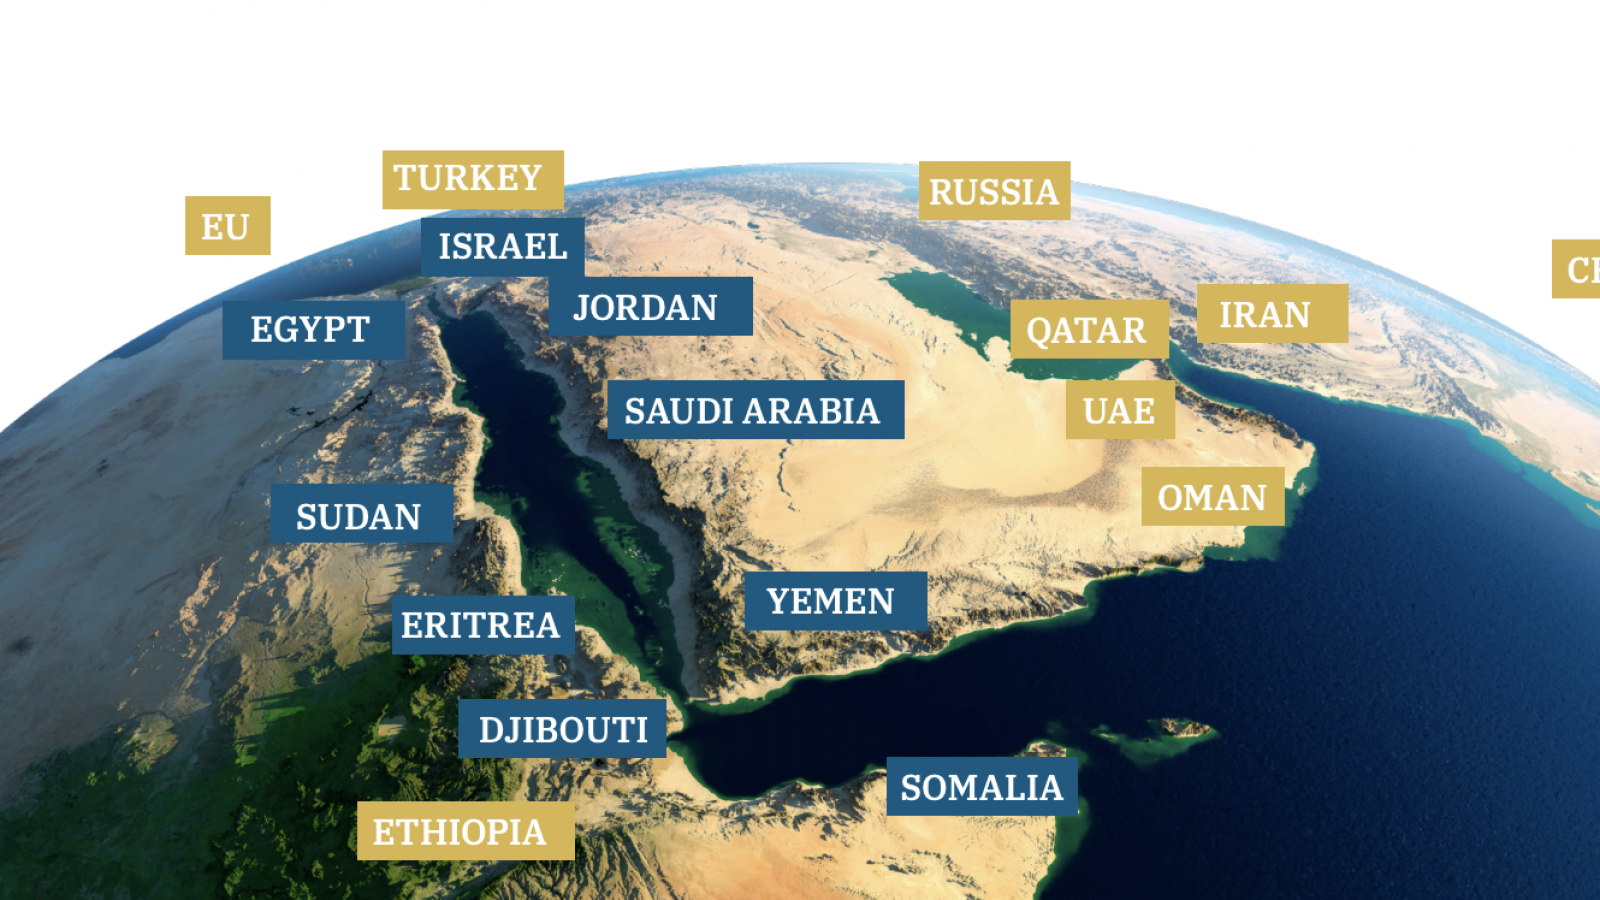 A map of the Red Sea region and other actors